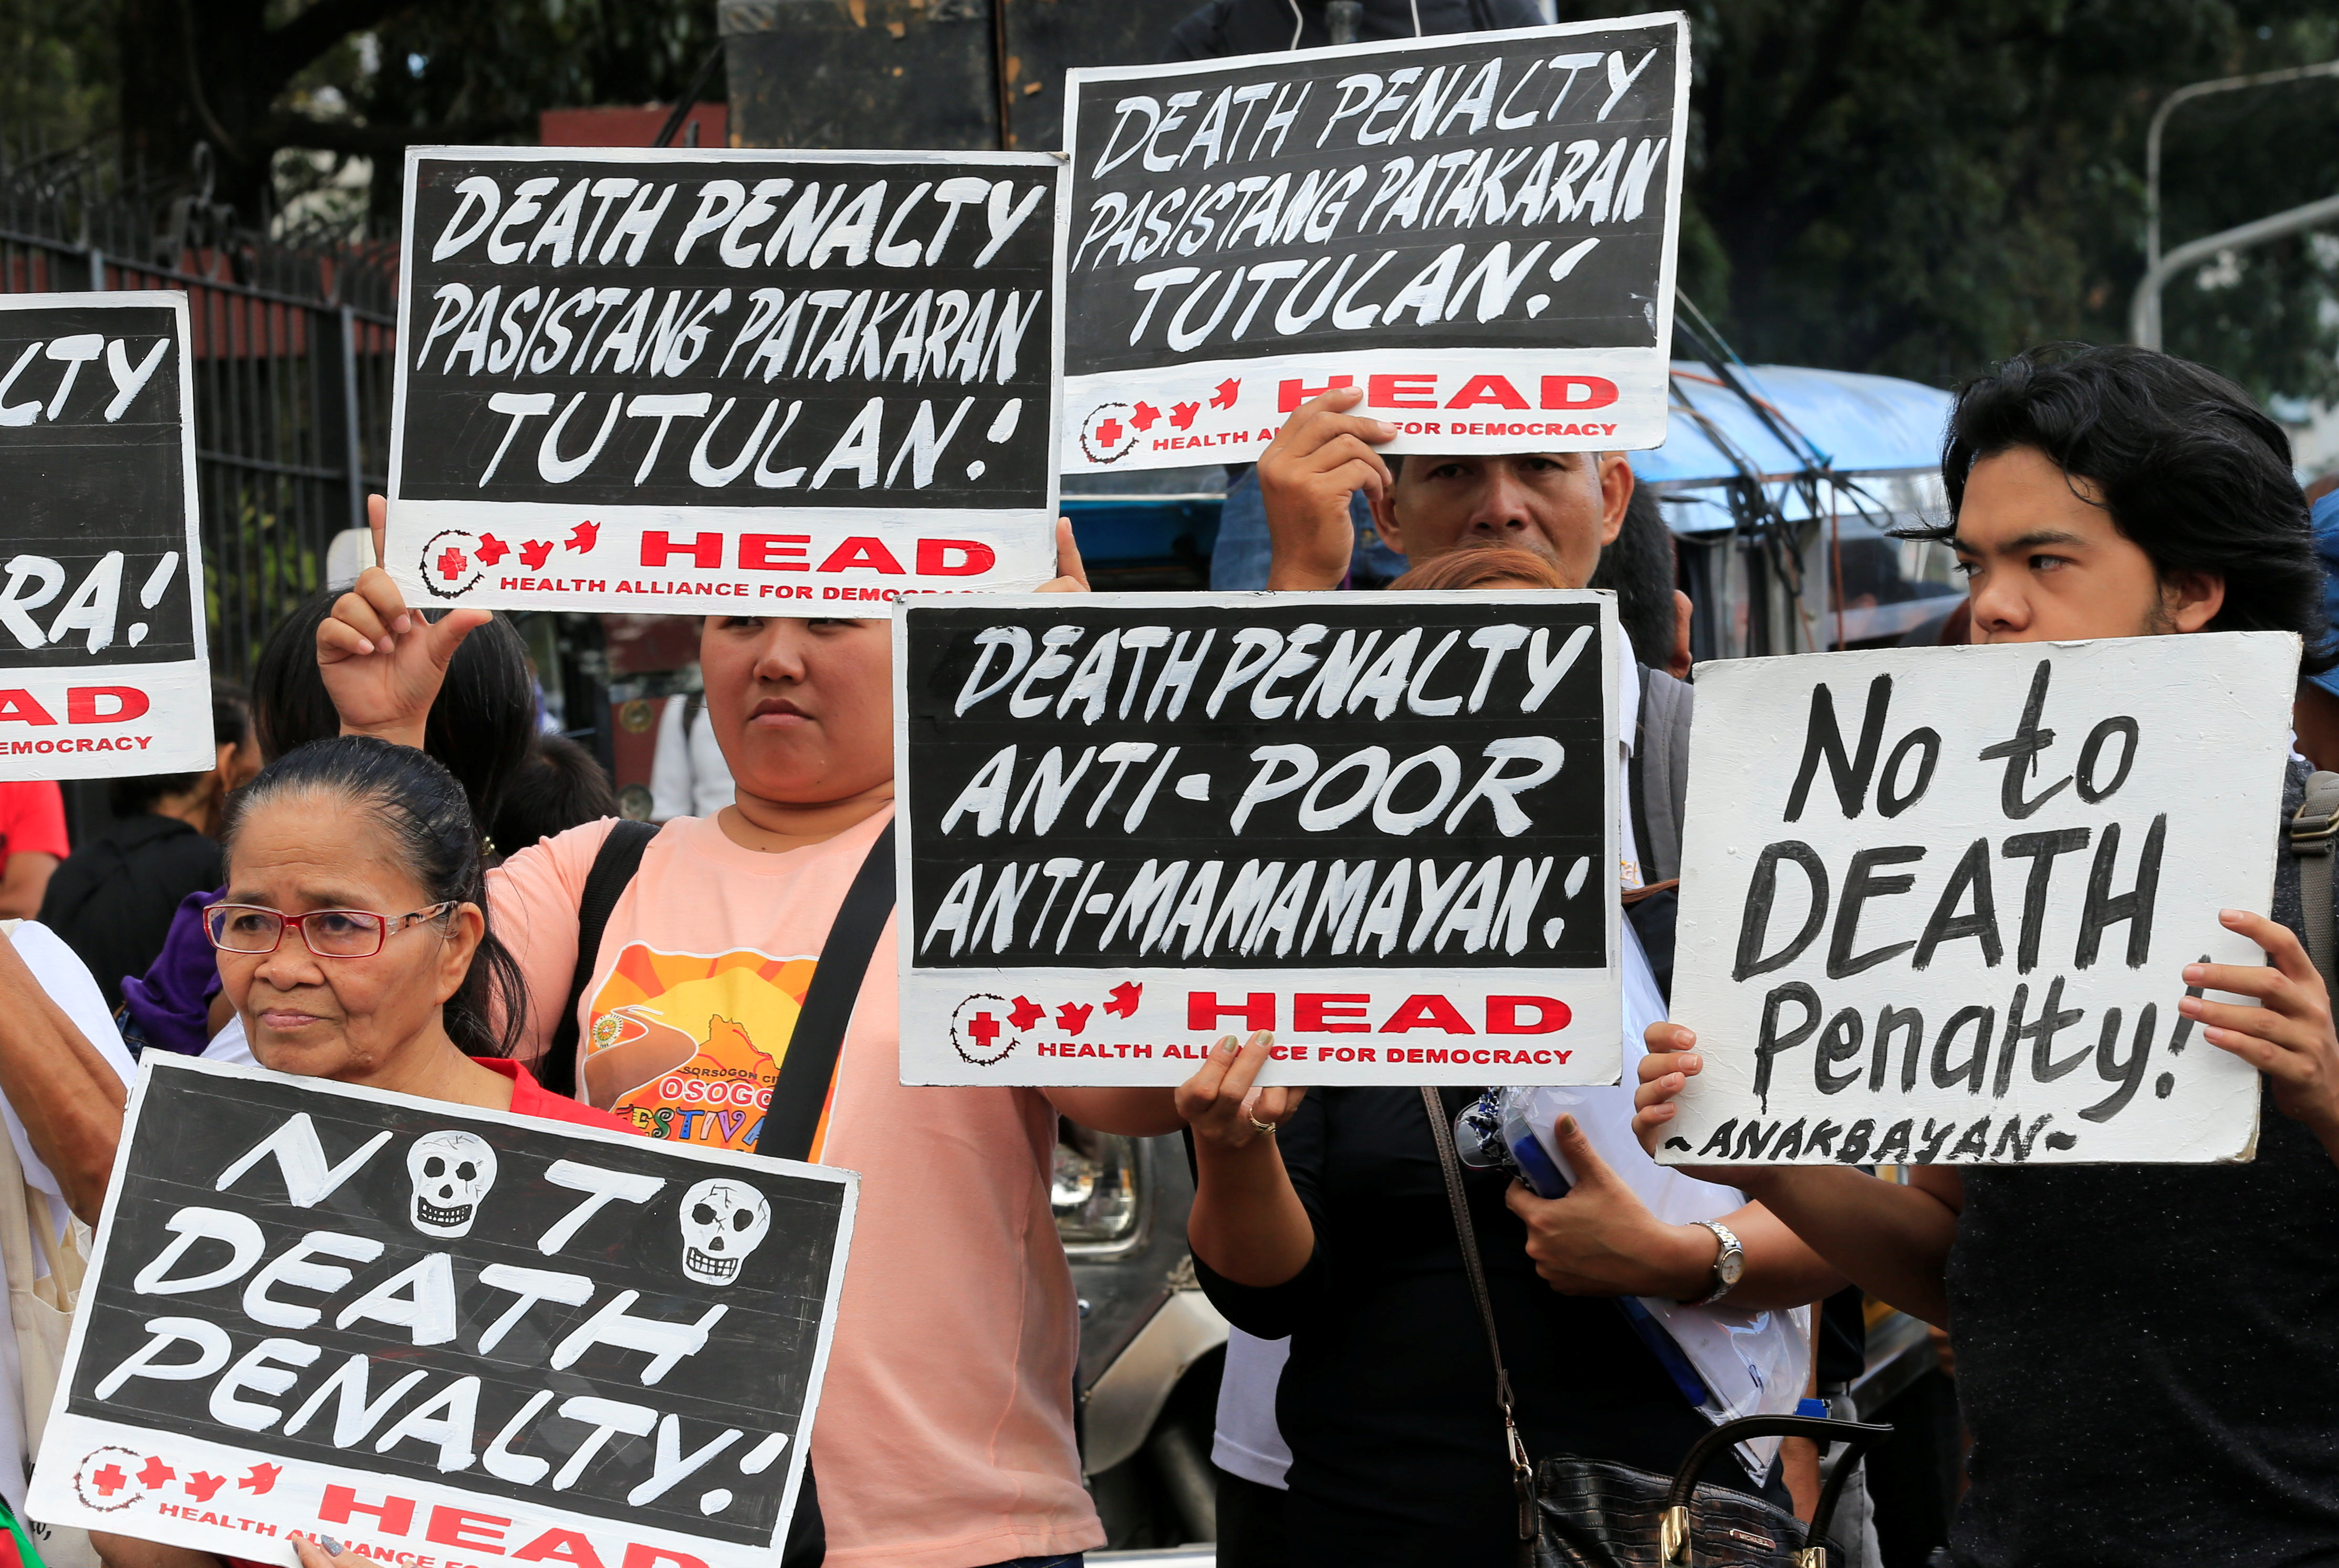 Activists during a protest rally against the passing of the death penalty bill, in Quezon city, metro Manila, Philippines March 7, 2017.